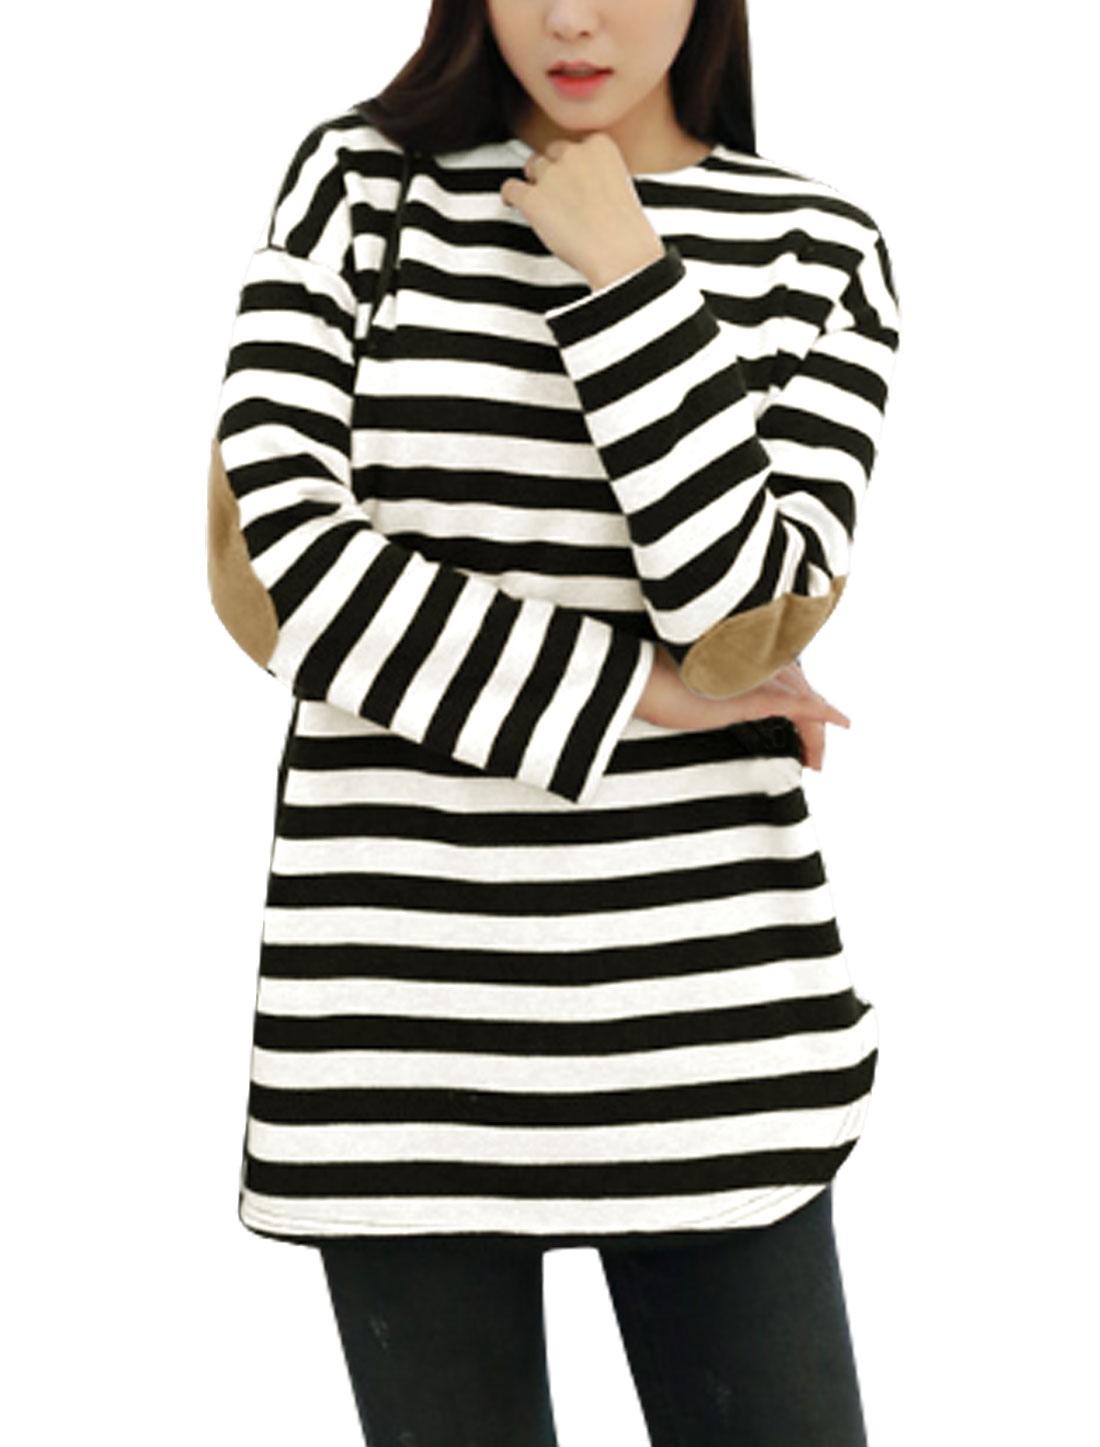 Women Crew Neck Long Sleeves Elbow Patch Tunic Striped Top Black White XS